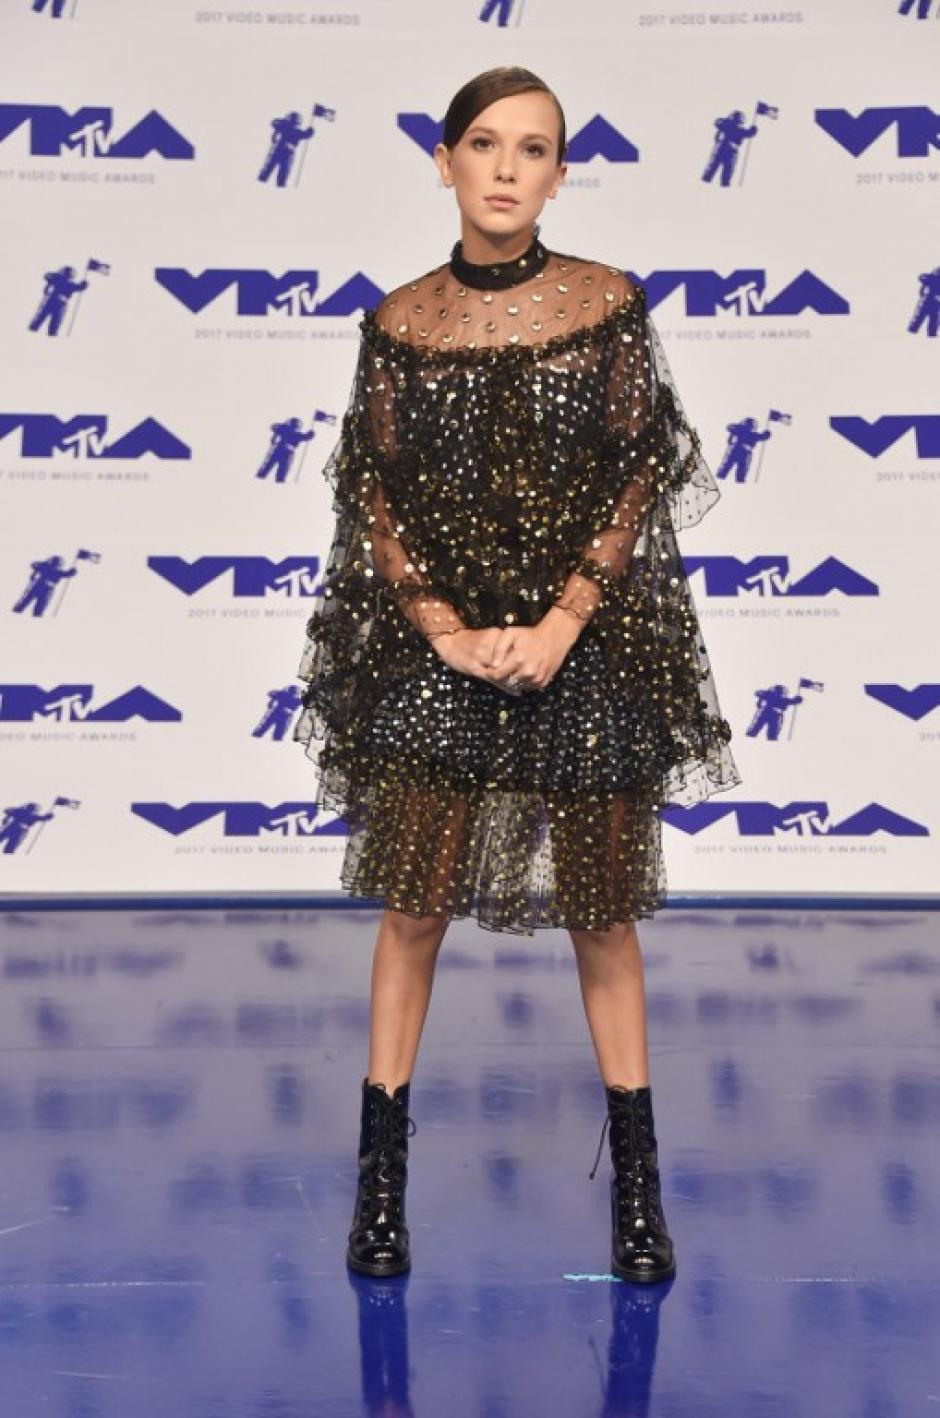 Millie Bobby Brown en los Video Music Awards 2017. (Foto: AFP)